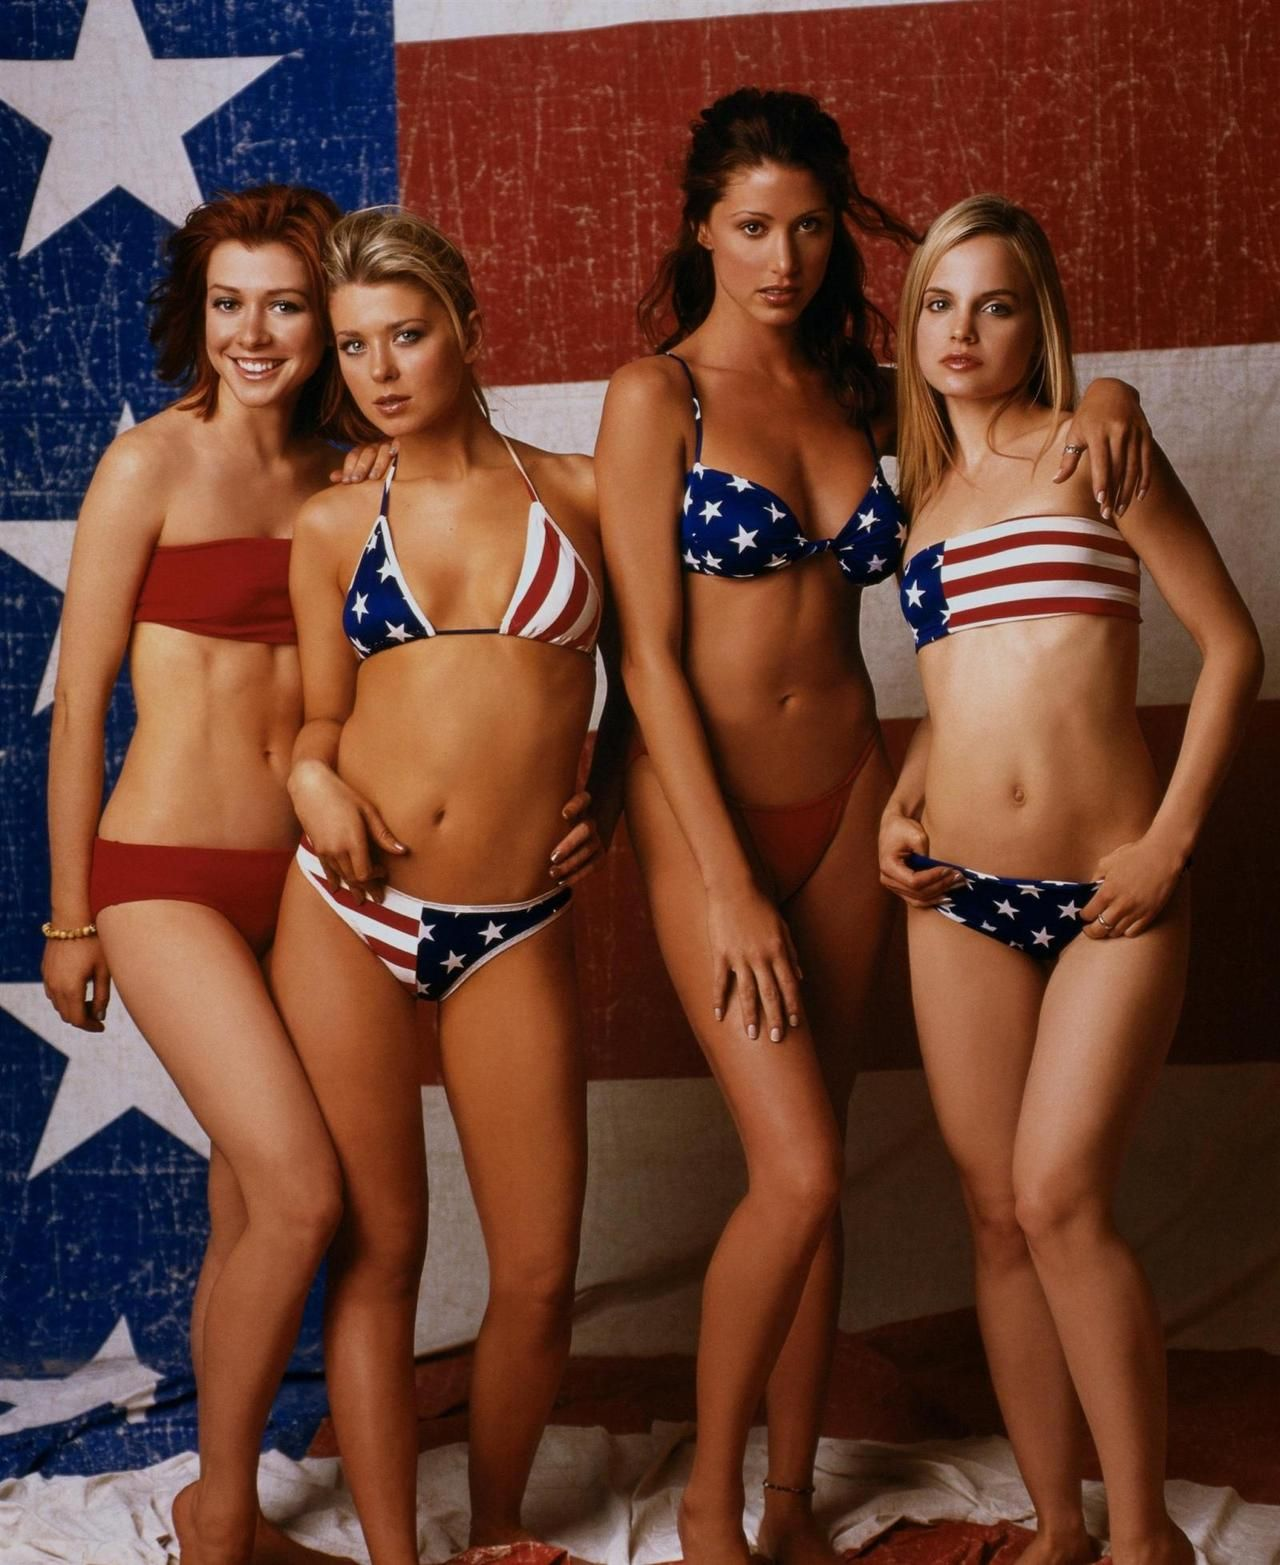 American Pie Uncensored michelle, vicky, nadia & heather - alyson hannigan, tara